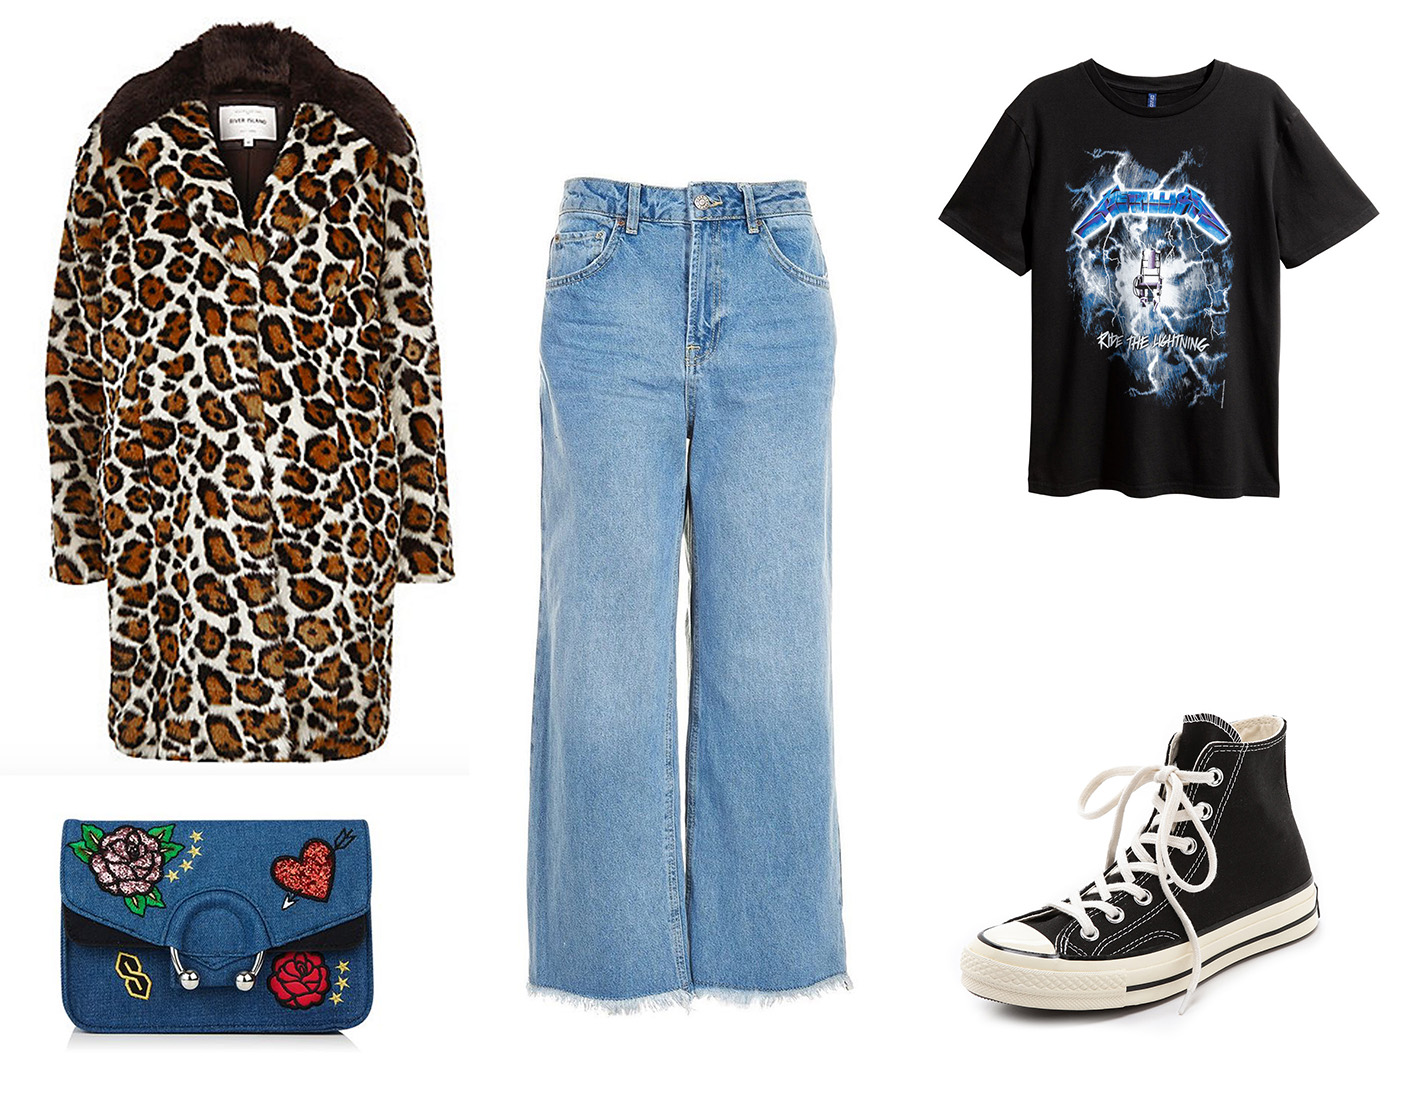 blue-light-culottes-pants-denim-black-graphic-tee-black-shoe-sneakers-blue-bag-leopard-print-camel-jacket-coat-fall-winter-weekend.jpg